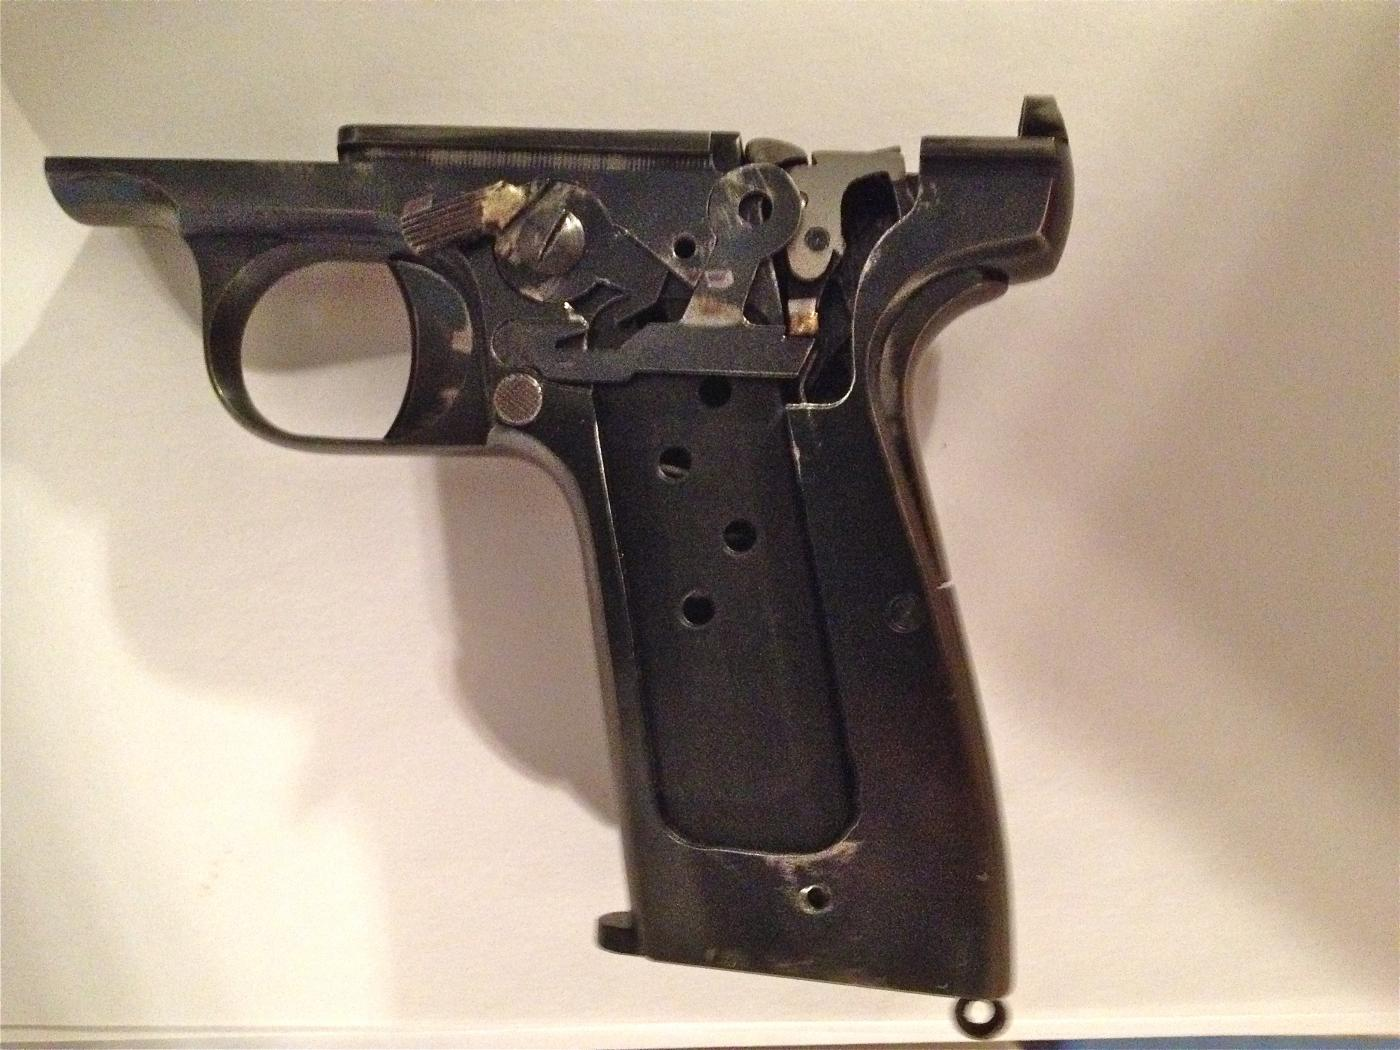 MAB Model D fixer upper | The Firearms Forum - The Buying